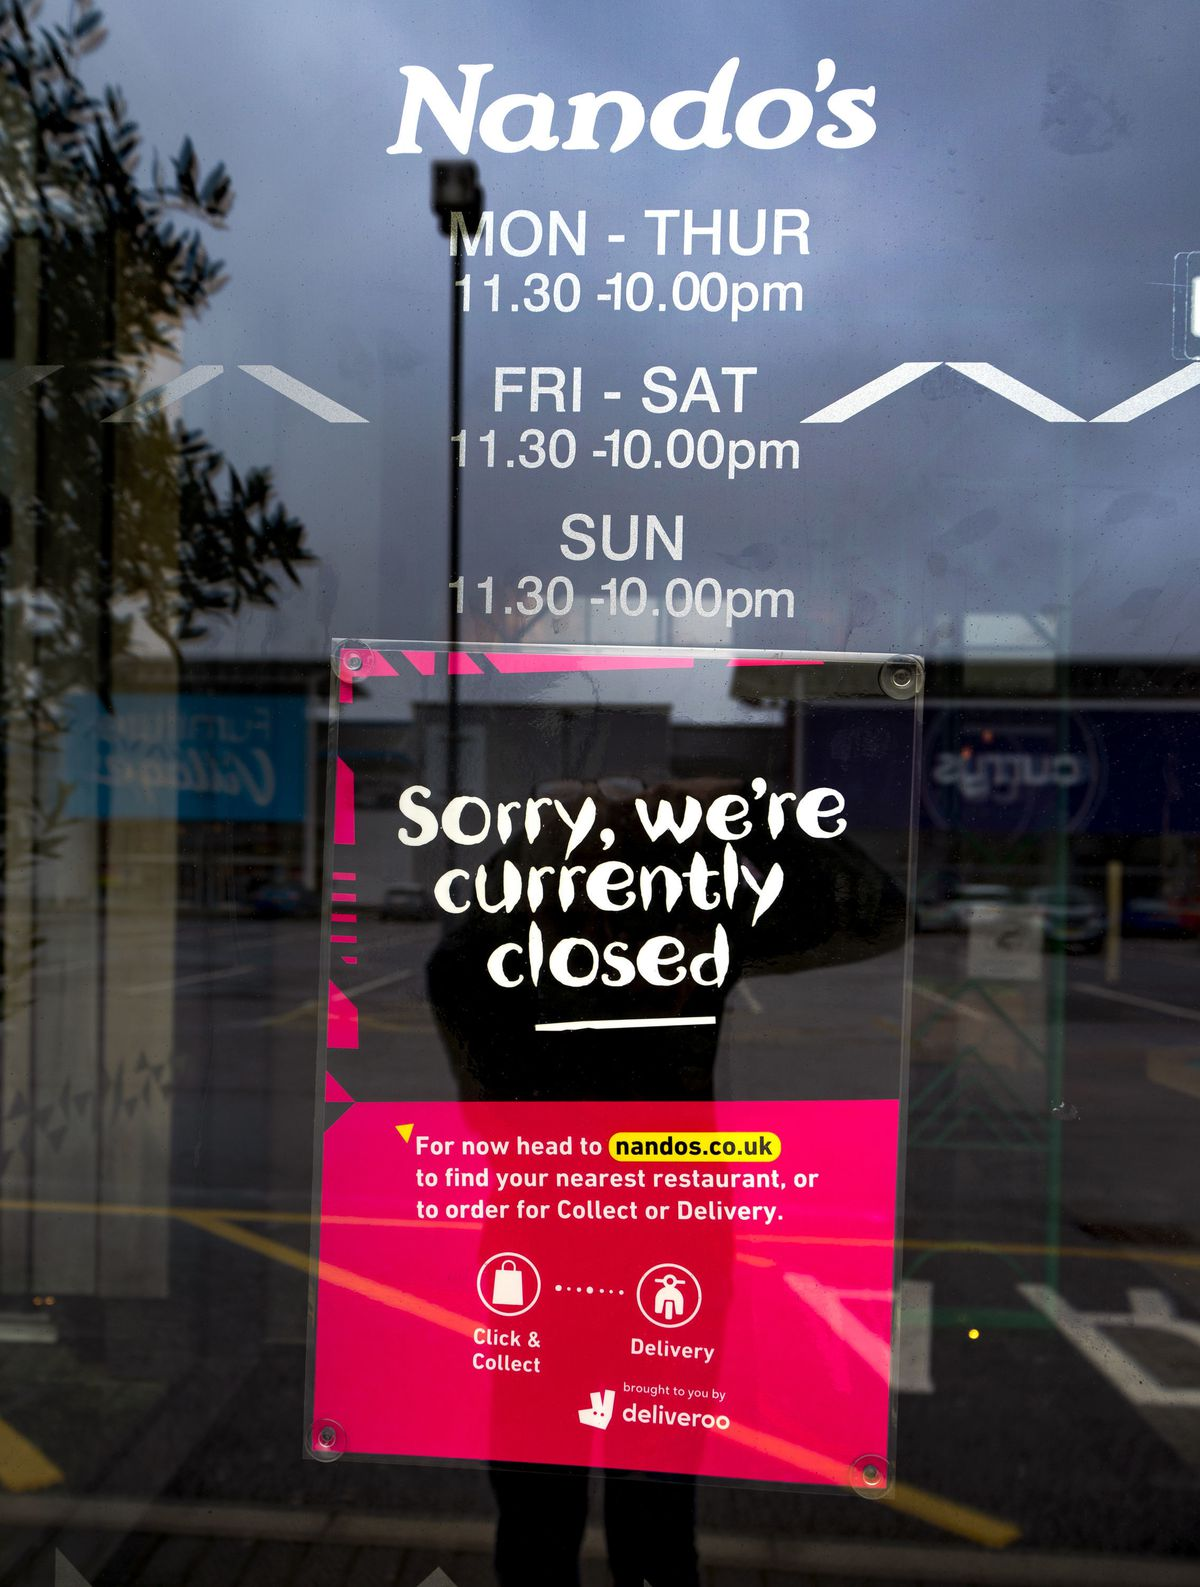 Some restaurants have signs up explaining the closure, such as this branch in Manchester